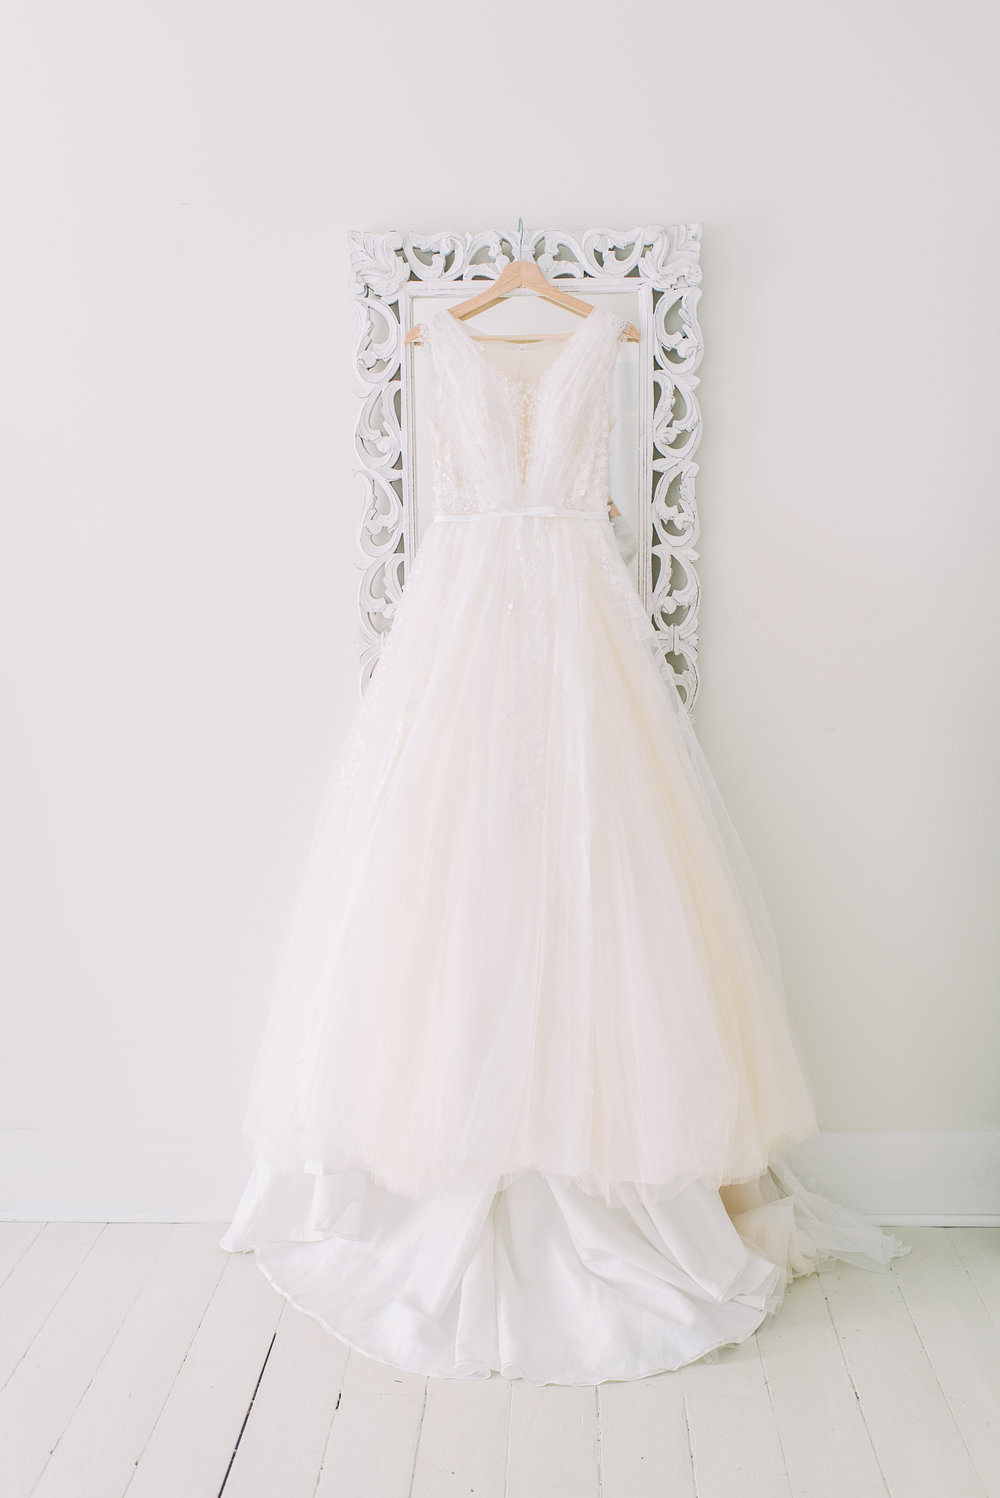 simple clean wedding dress photo perfect wedding dress for playful brides under $1000